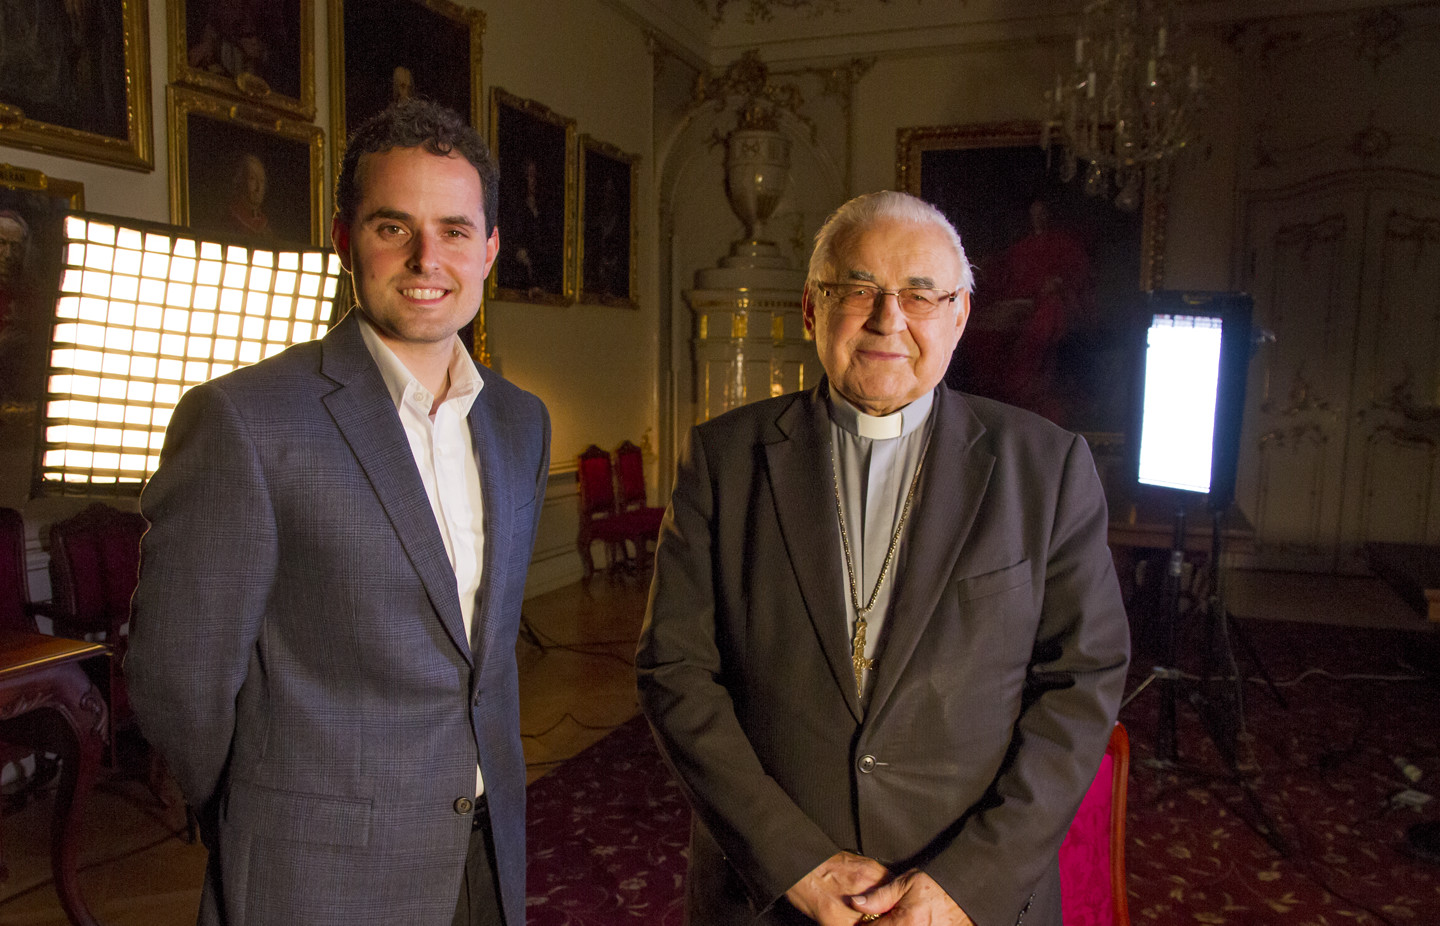 Director David Naglieri with Cardinal Miloslav Vlk following an interview conducted in the Archbishop's palace located in Hradcanske square near Prague Castle.